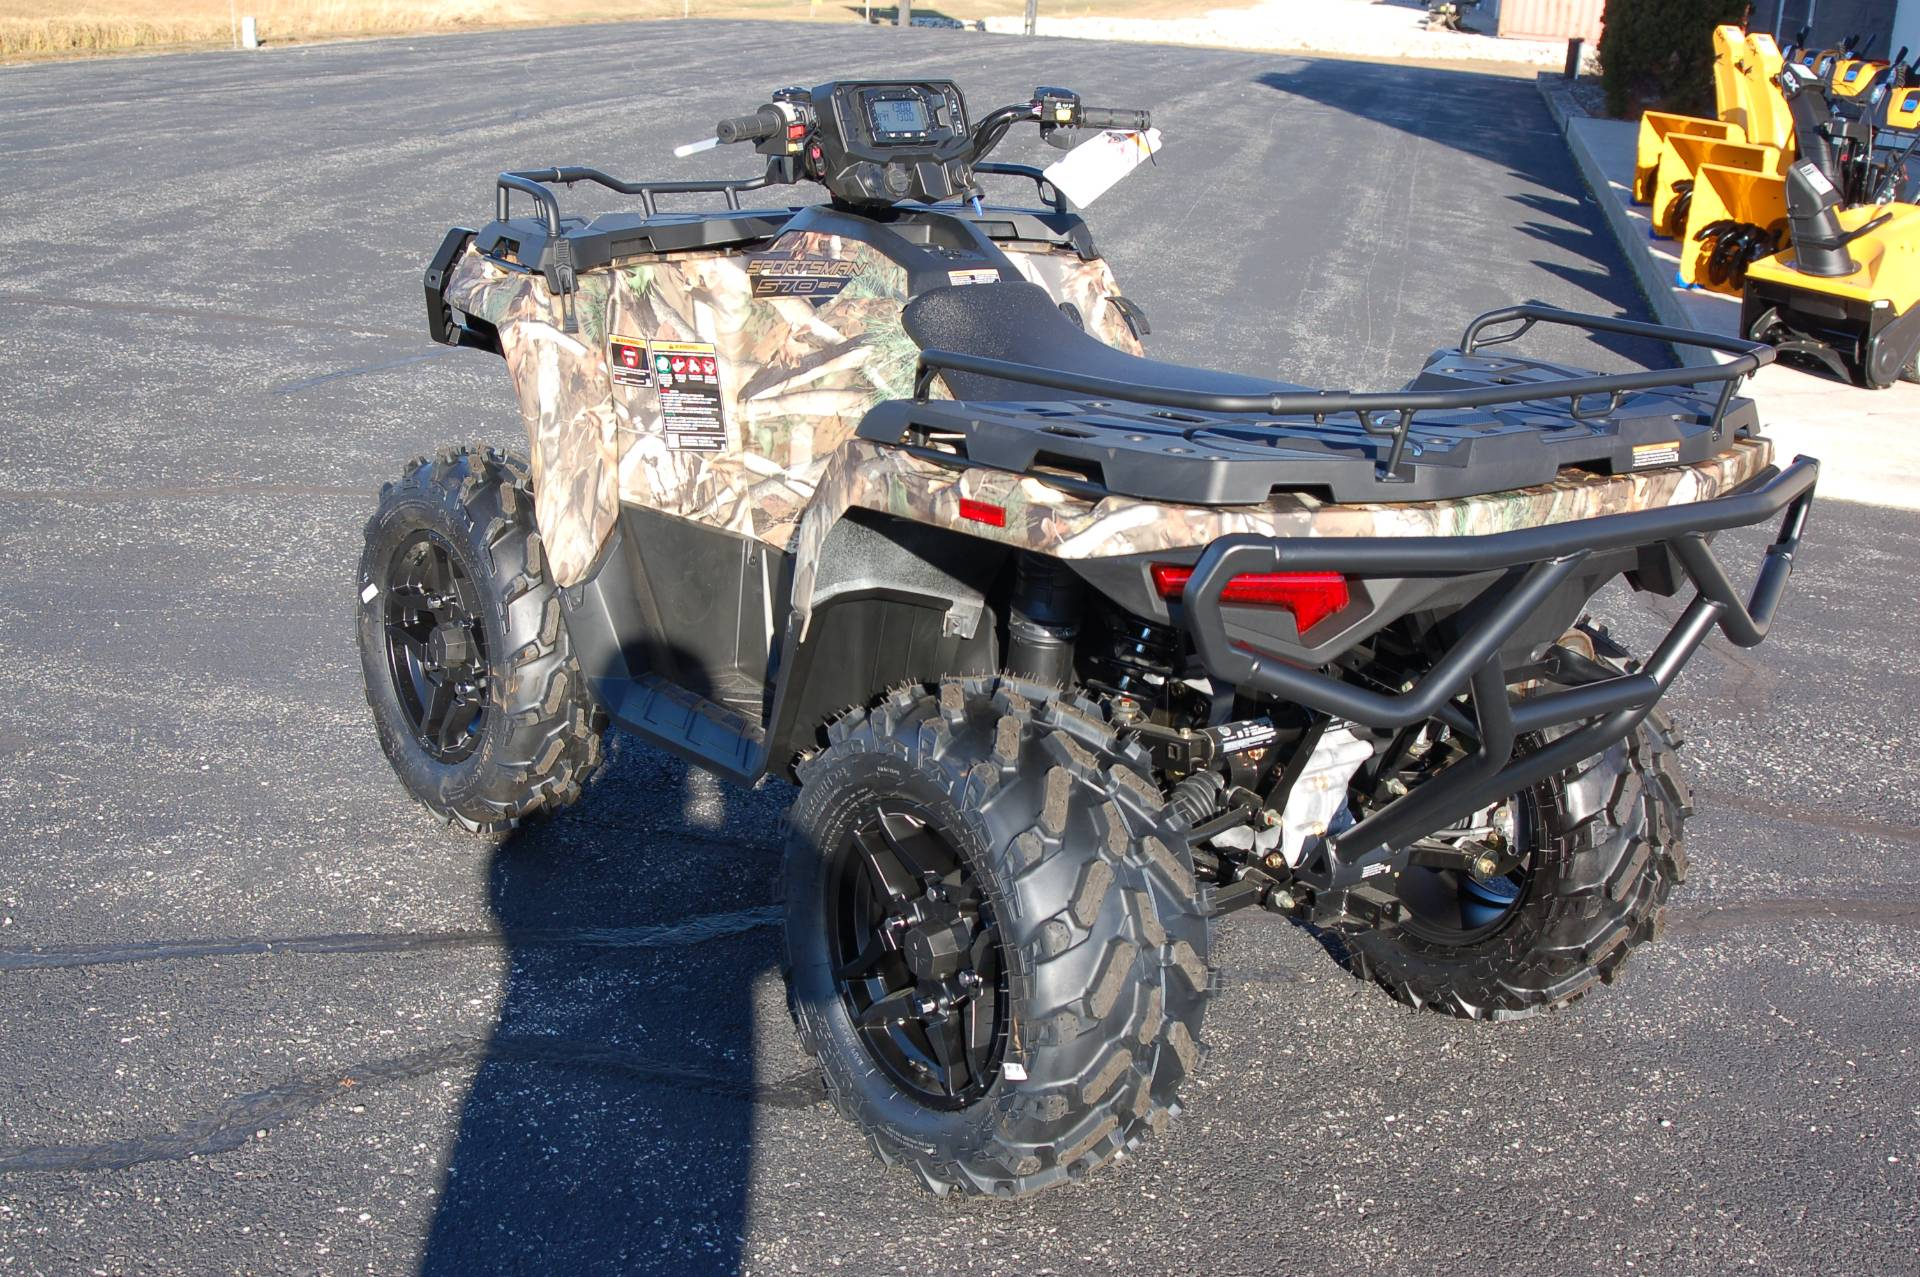 2021 Polaris Sportsman 570 Hunt Edition in Sturgeon Bay, Wisconsin - Photo 3